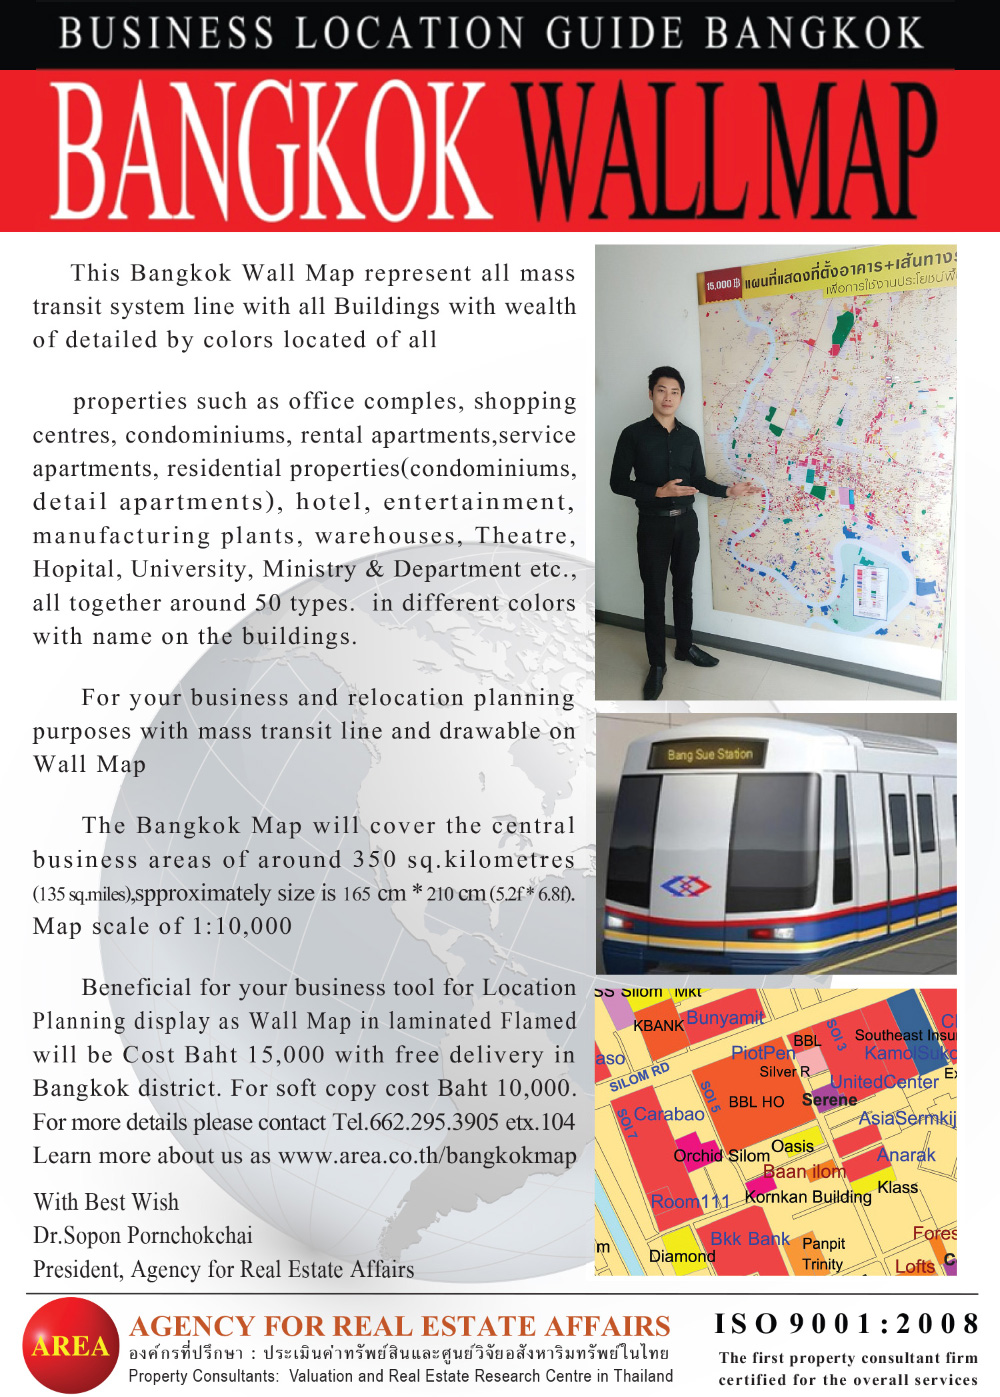 Business Location Guide Bangkok: Bangkok Wall Map